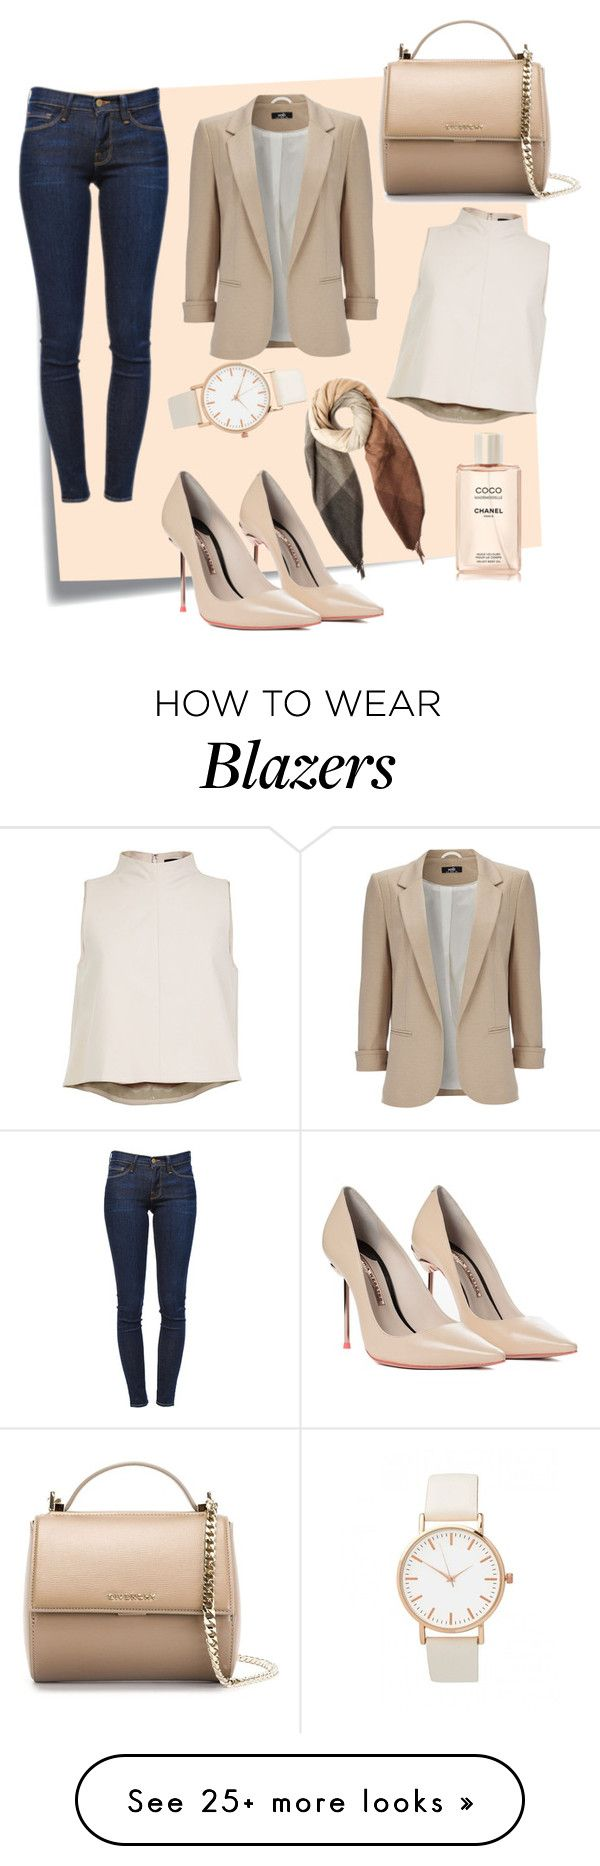 """#oufit for work#"" by edytamurselovic on Polyvore featuring moda, Post-It, Sophia Webster, Givenchy, Paul Smith, Wallis, TIBI e Frame Denim"